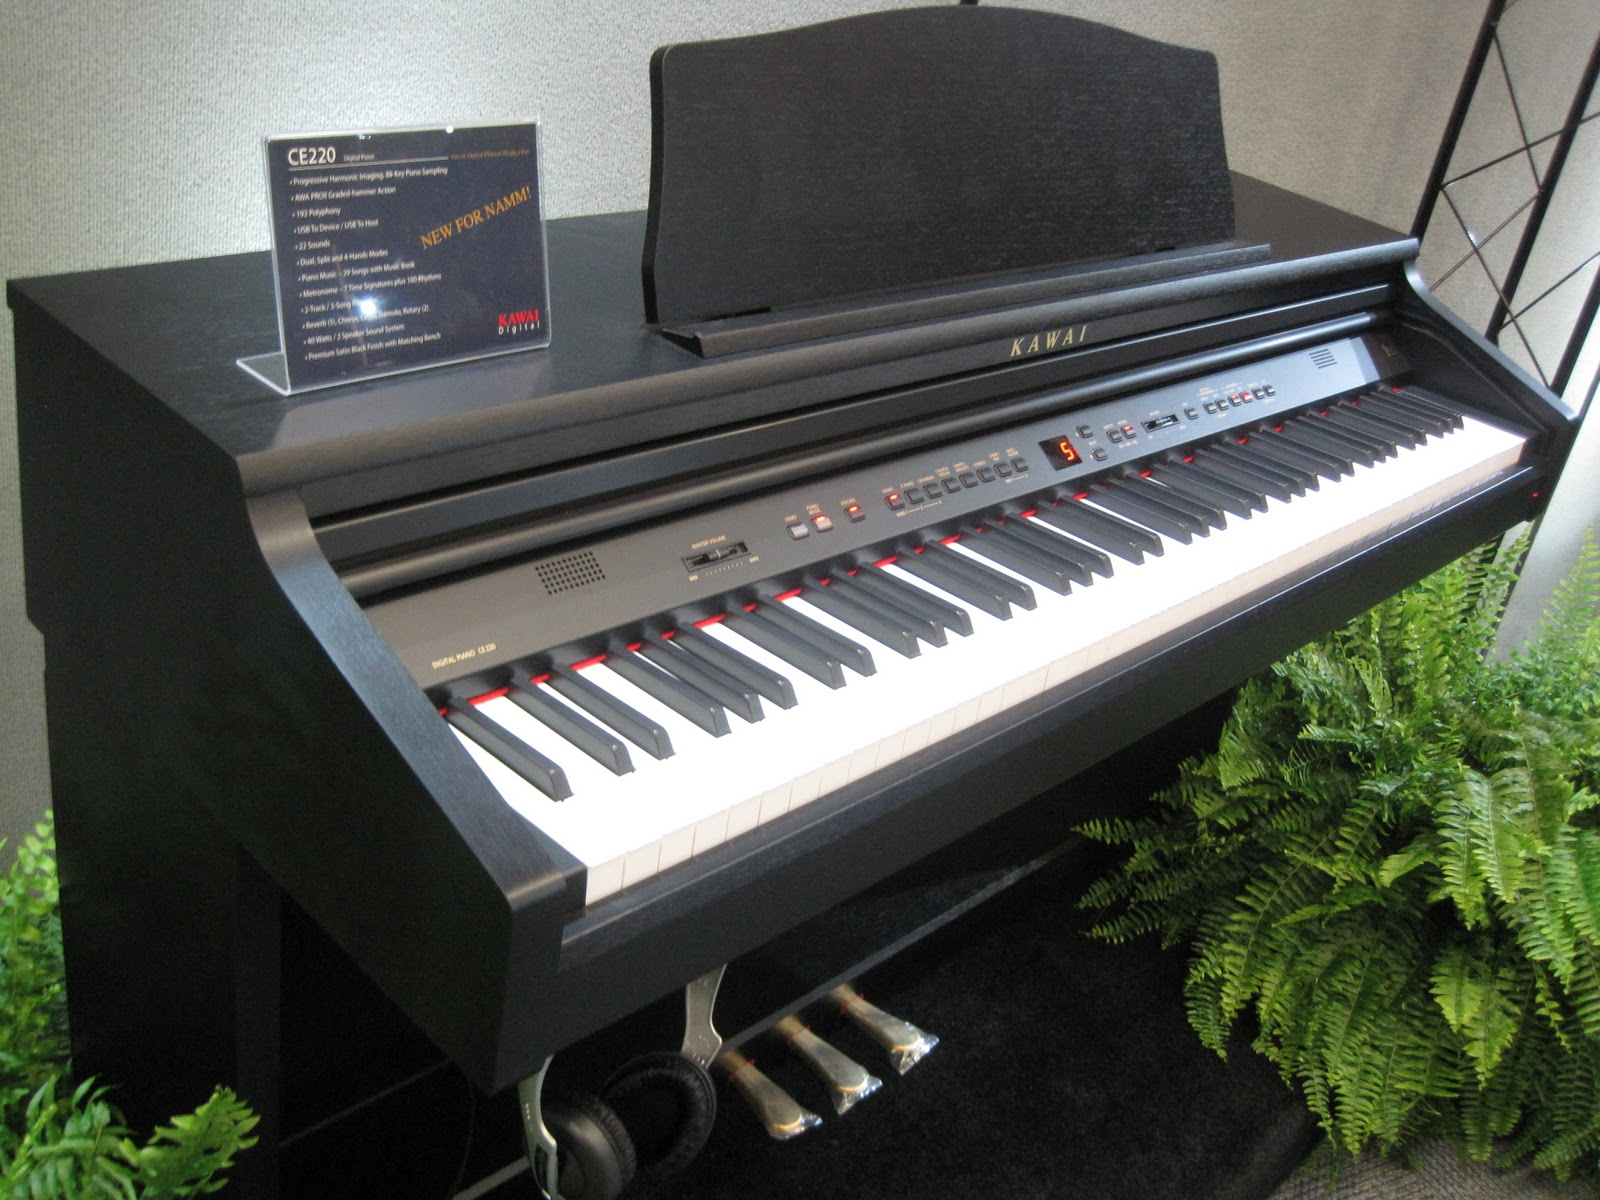 Digital Piano Kawai Or Yamaha : az piano reviews review kawai ce220 digital piano recommended ~ Hamham.info Haus und Dekorationen